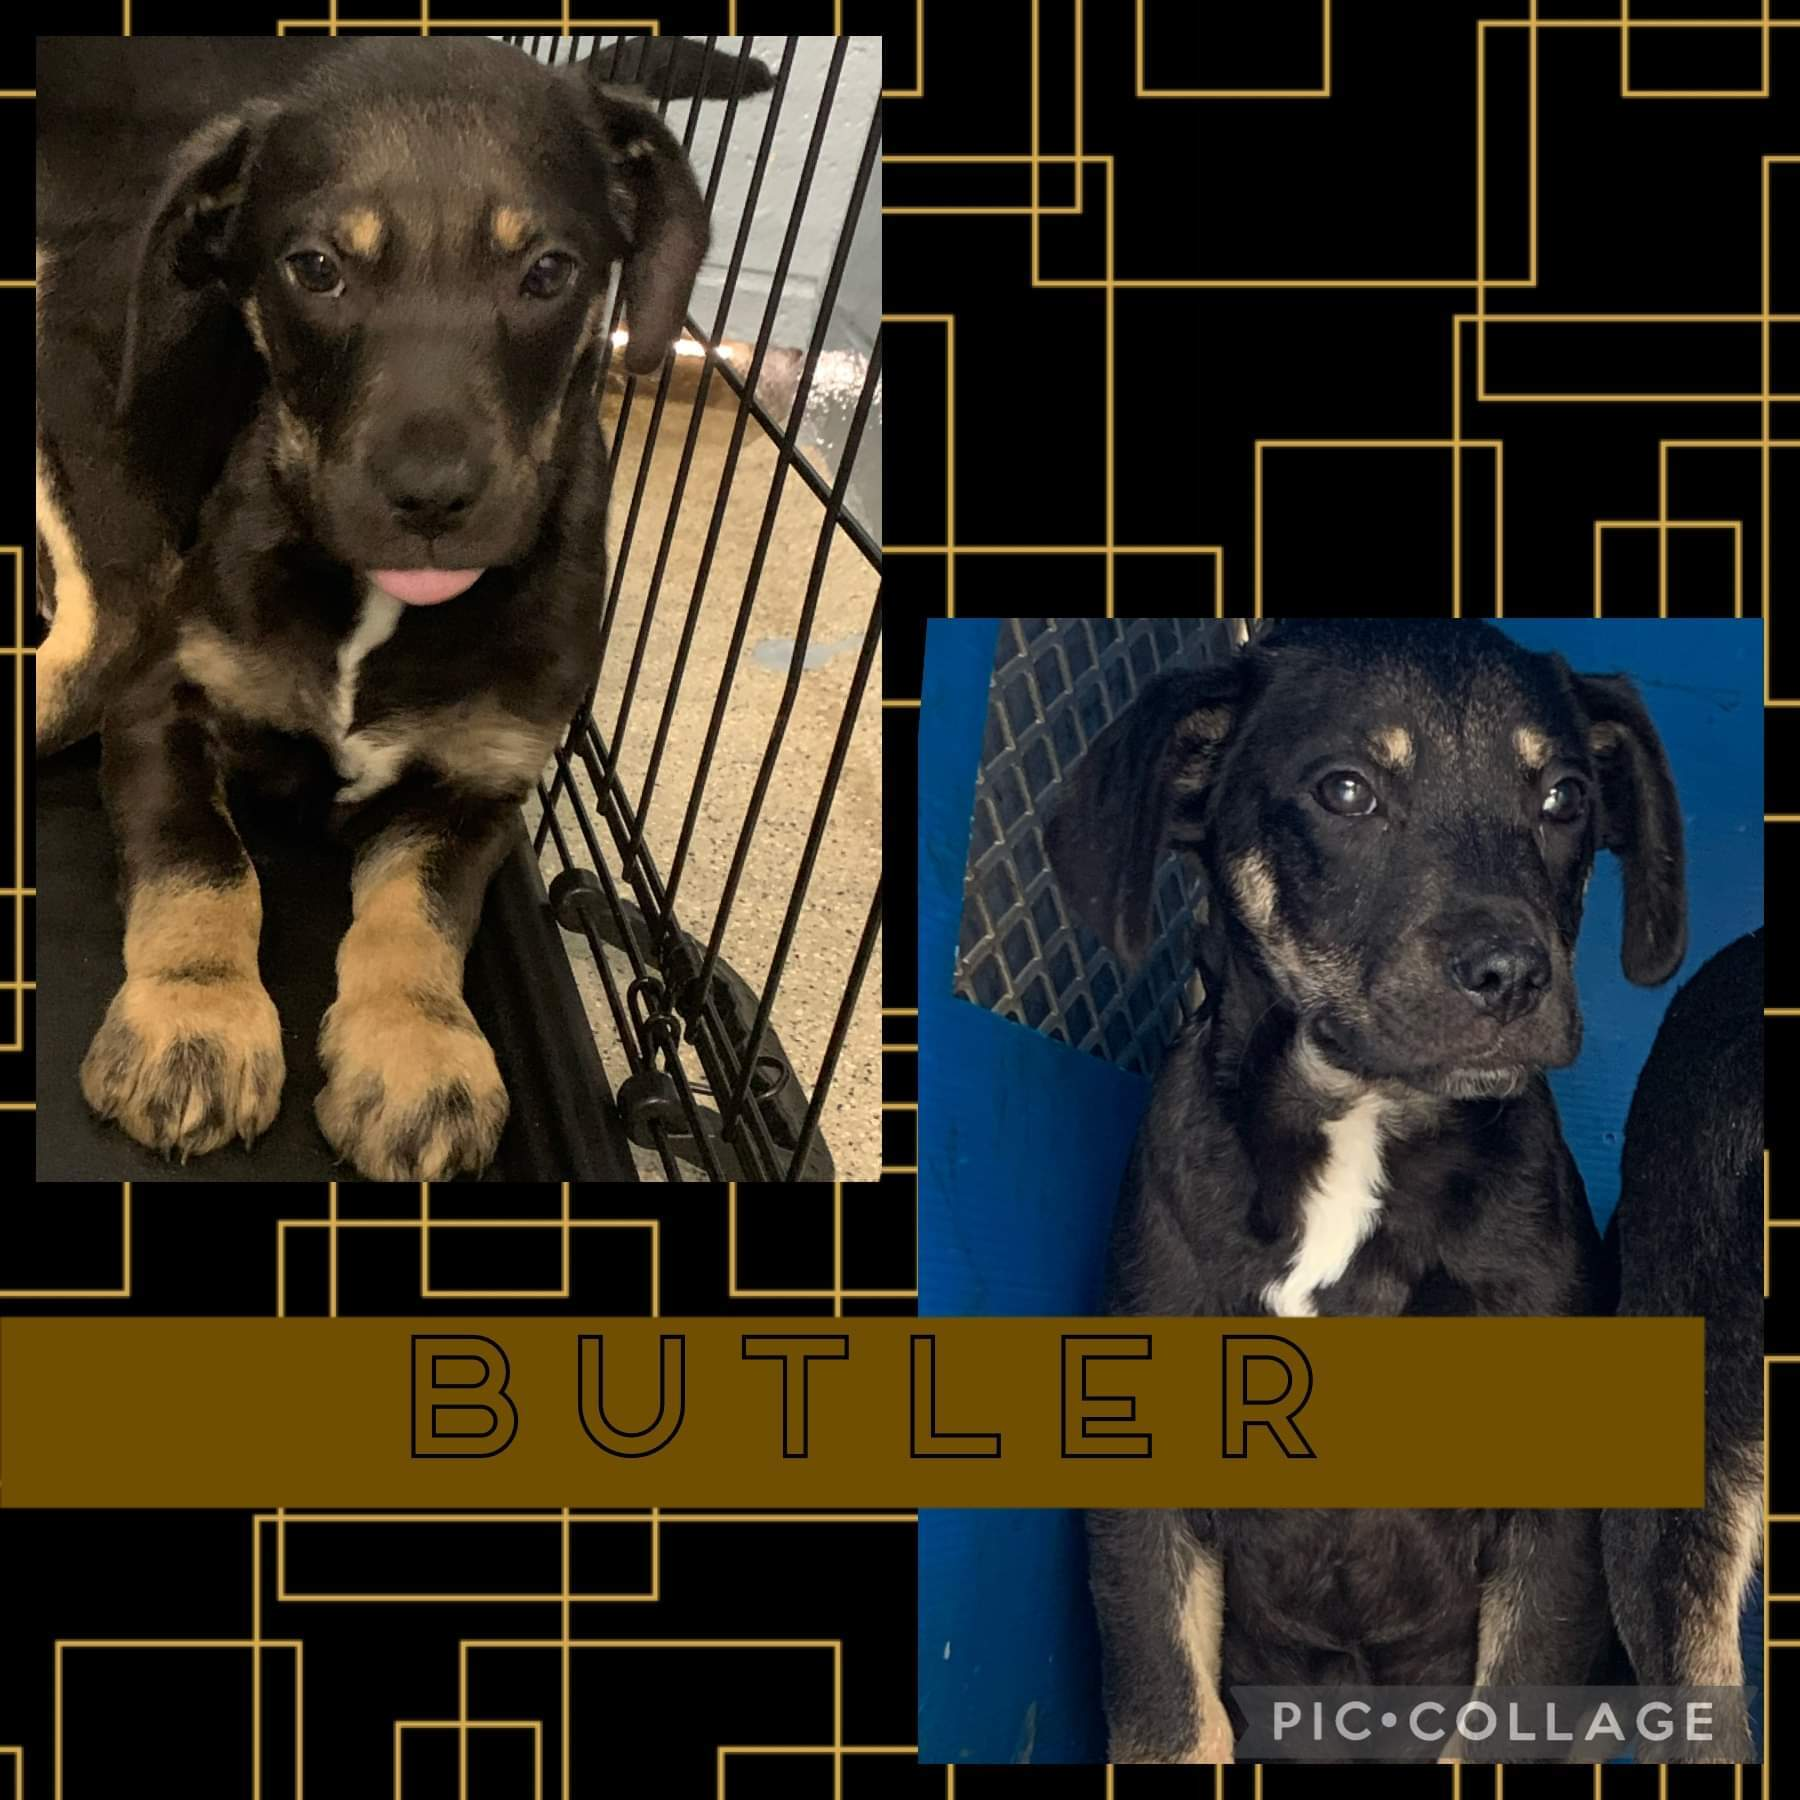 Butler detail page